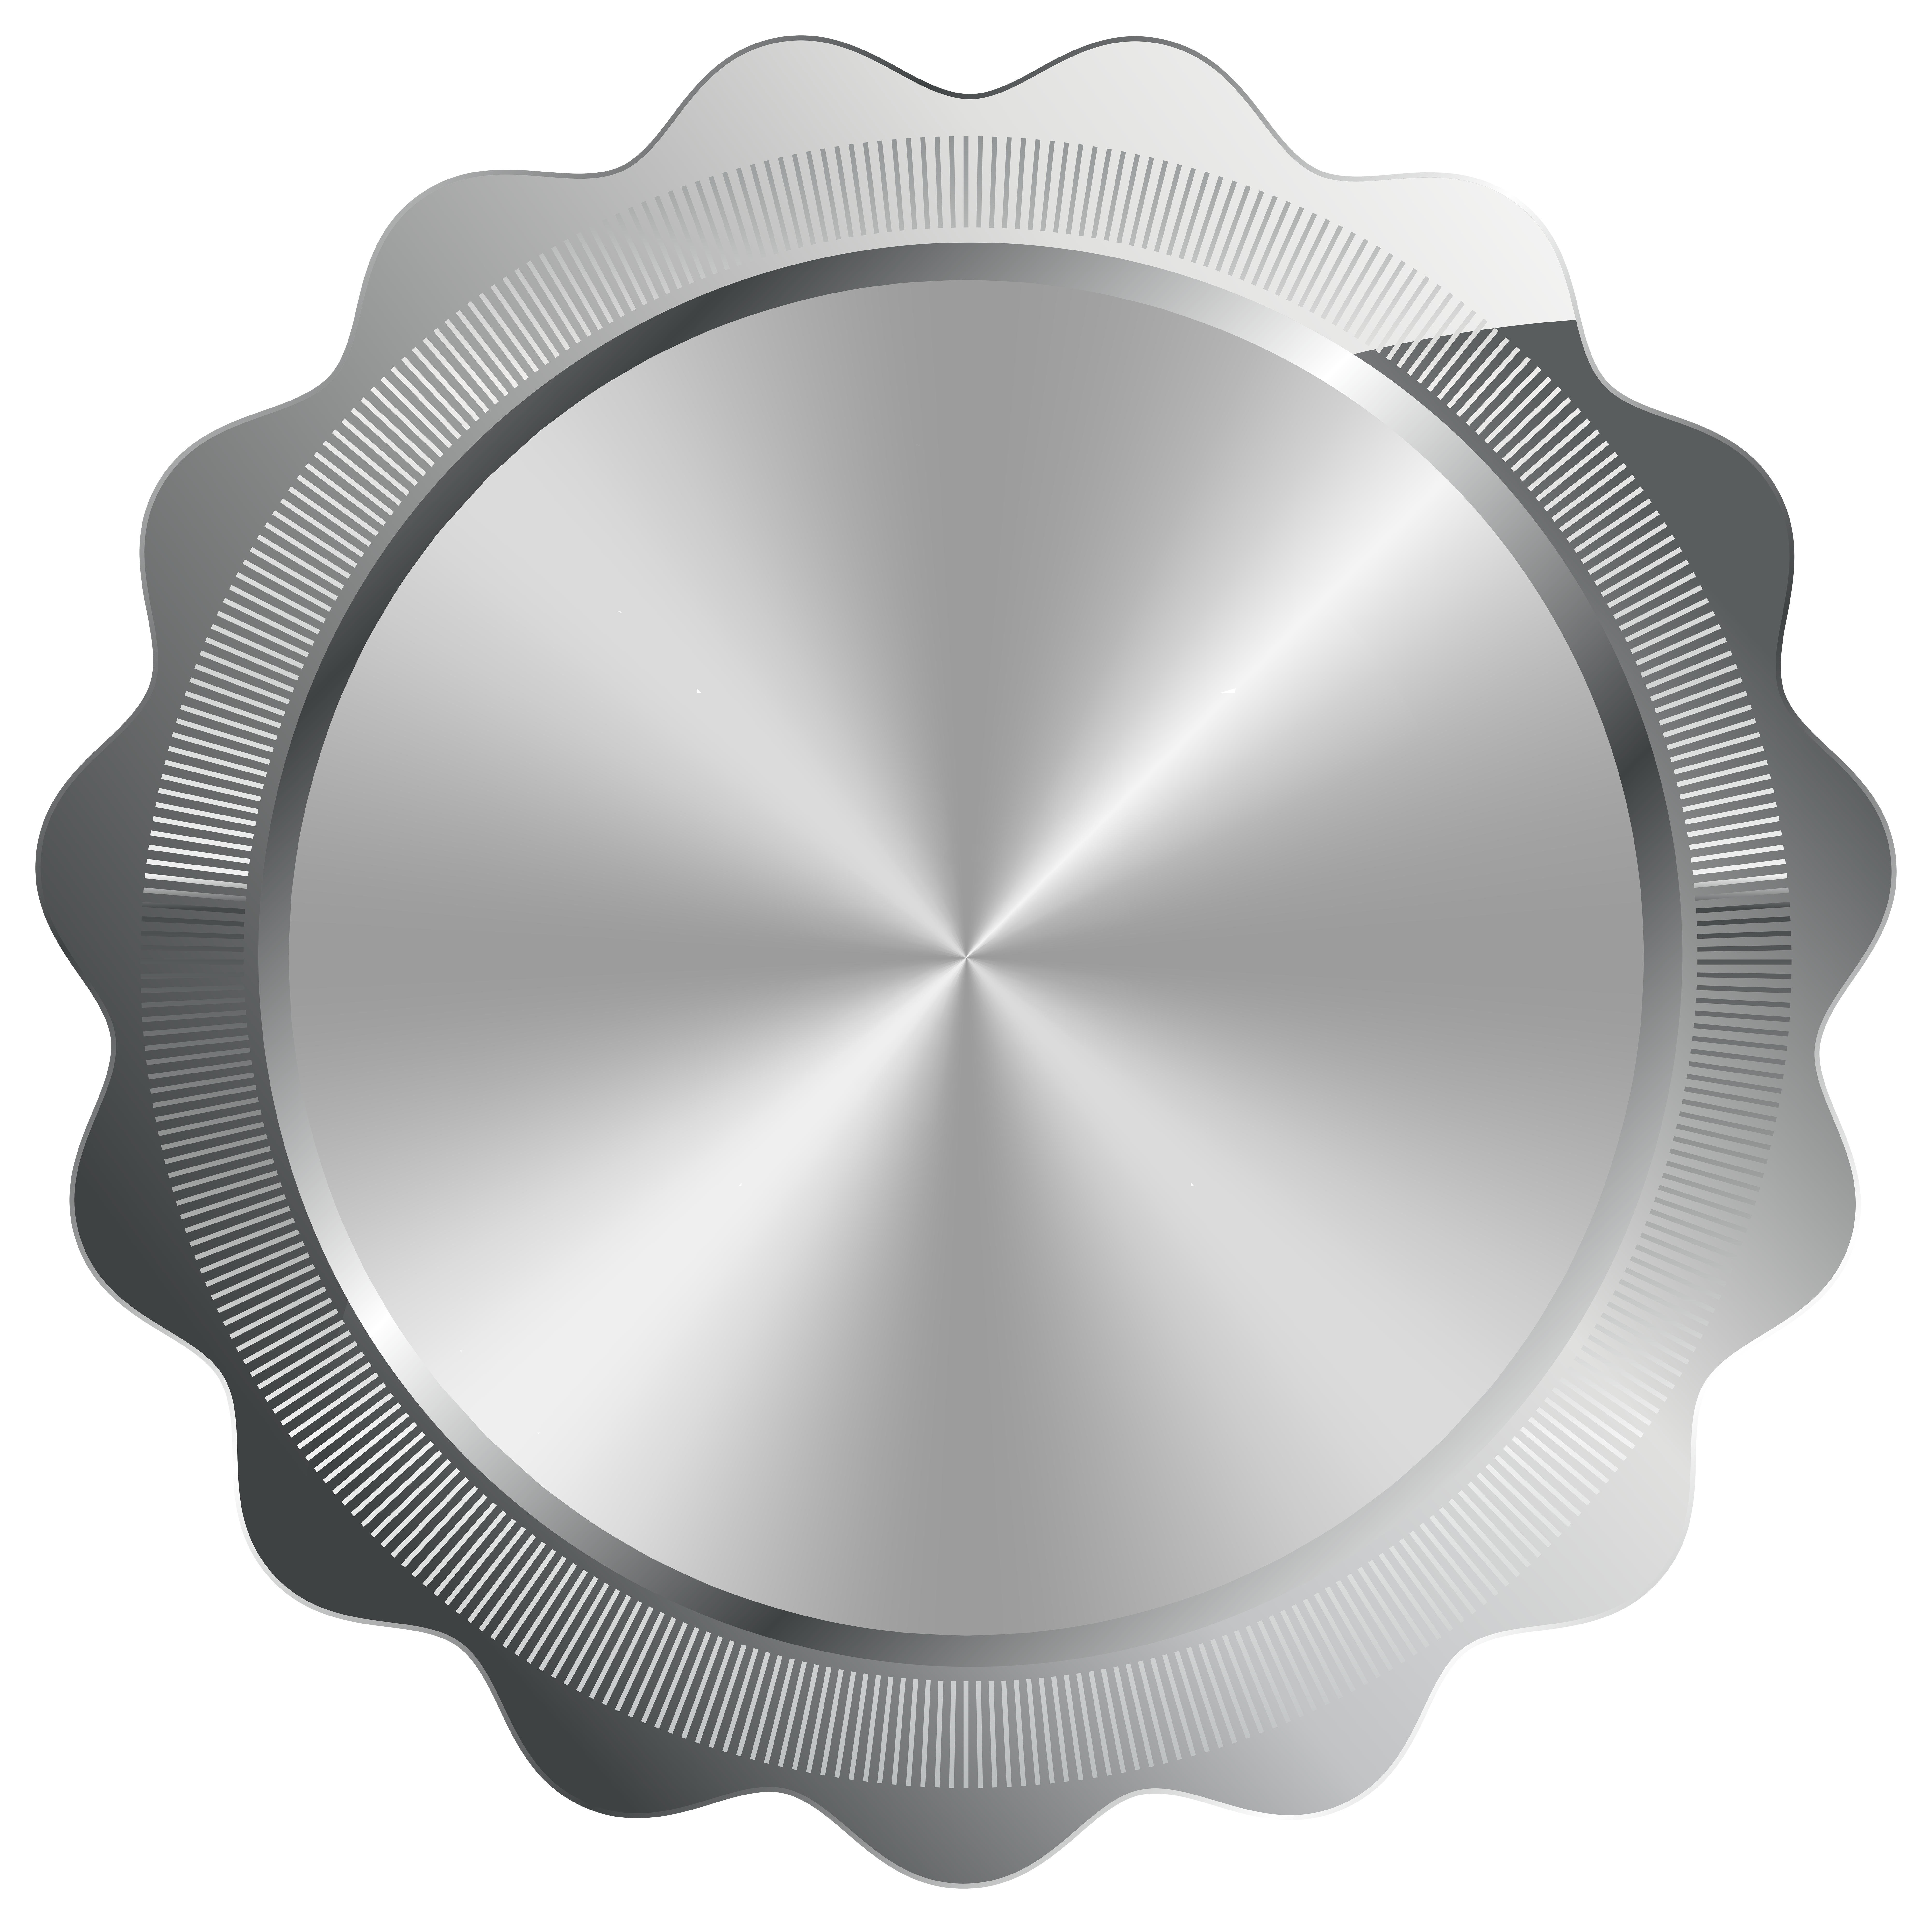 silver labels png